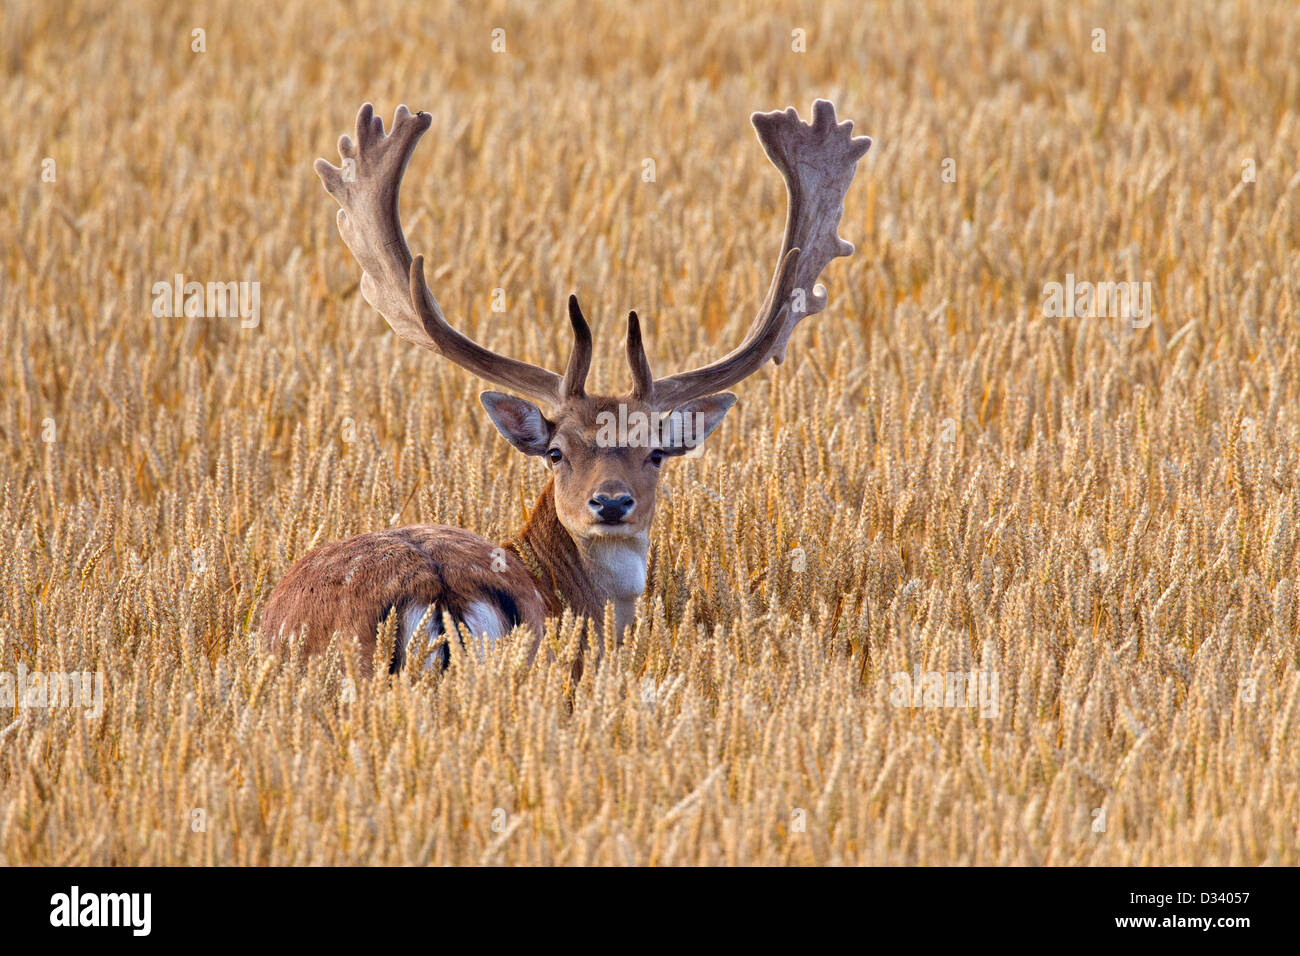 Fallow deer (Dama dama) buck with antlers covered in velvet in wheat field in summer Stock Photo